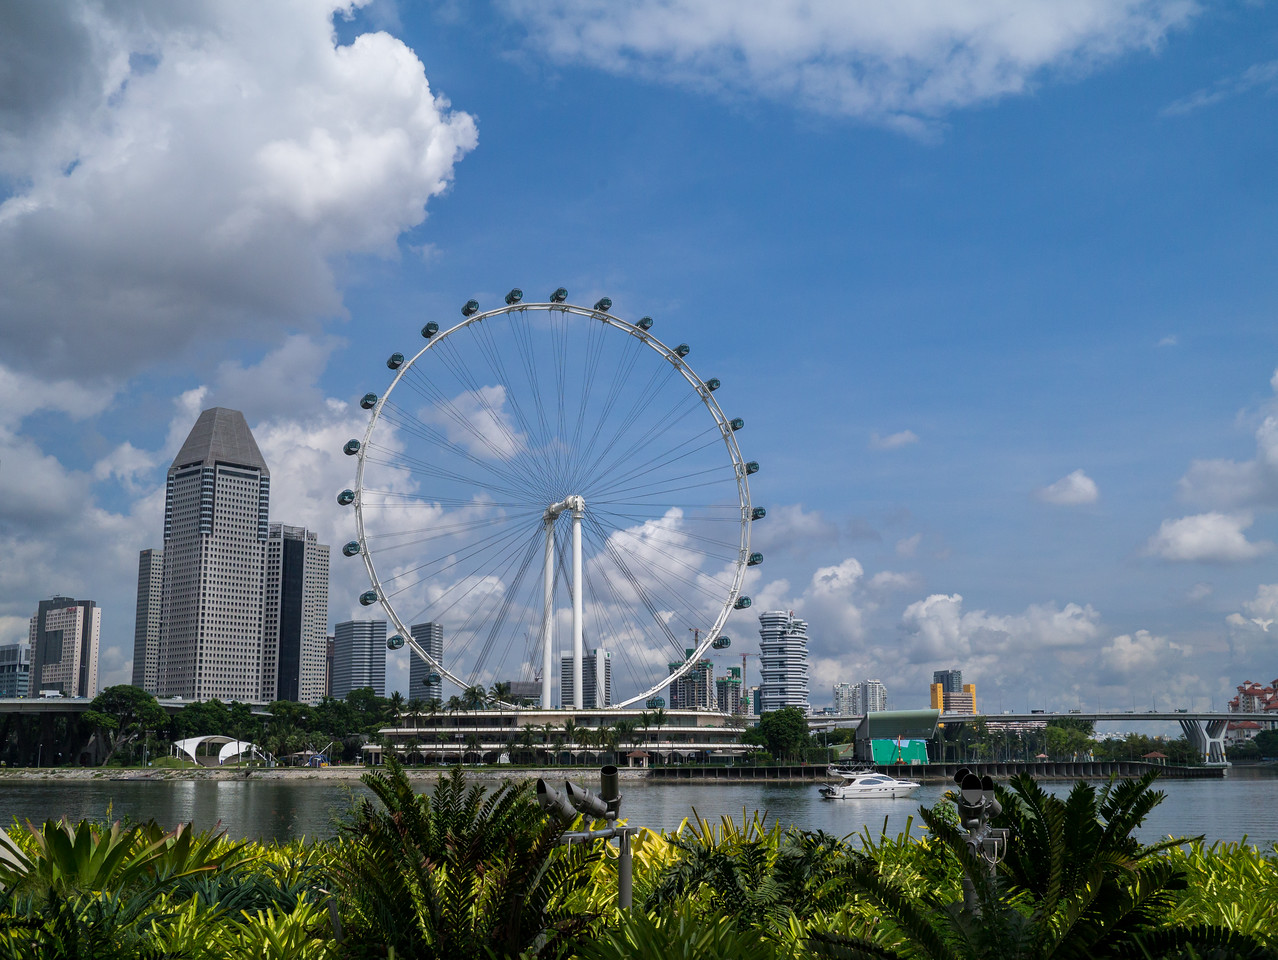 Looking across the river at the Singapore Flyer